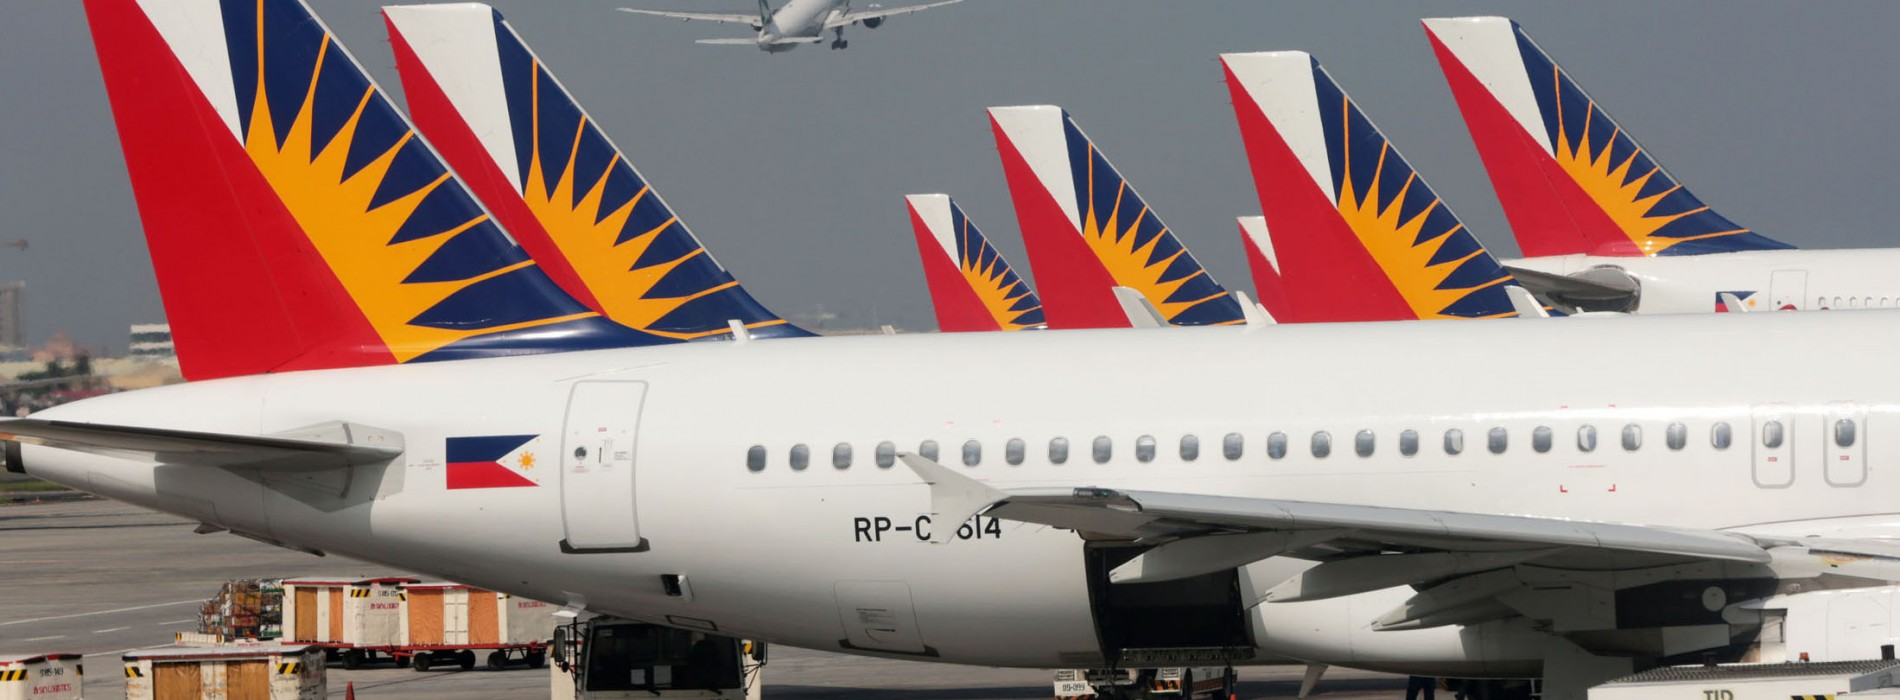 Philippines Airlines to start direct flights between India and Philippines soon